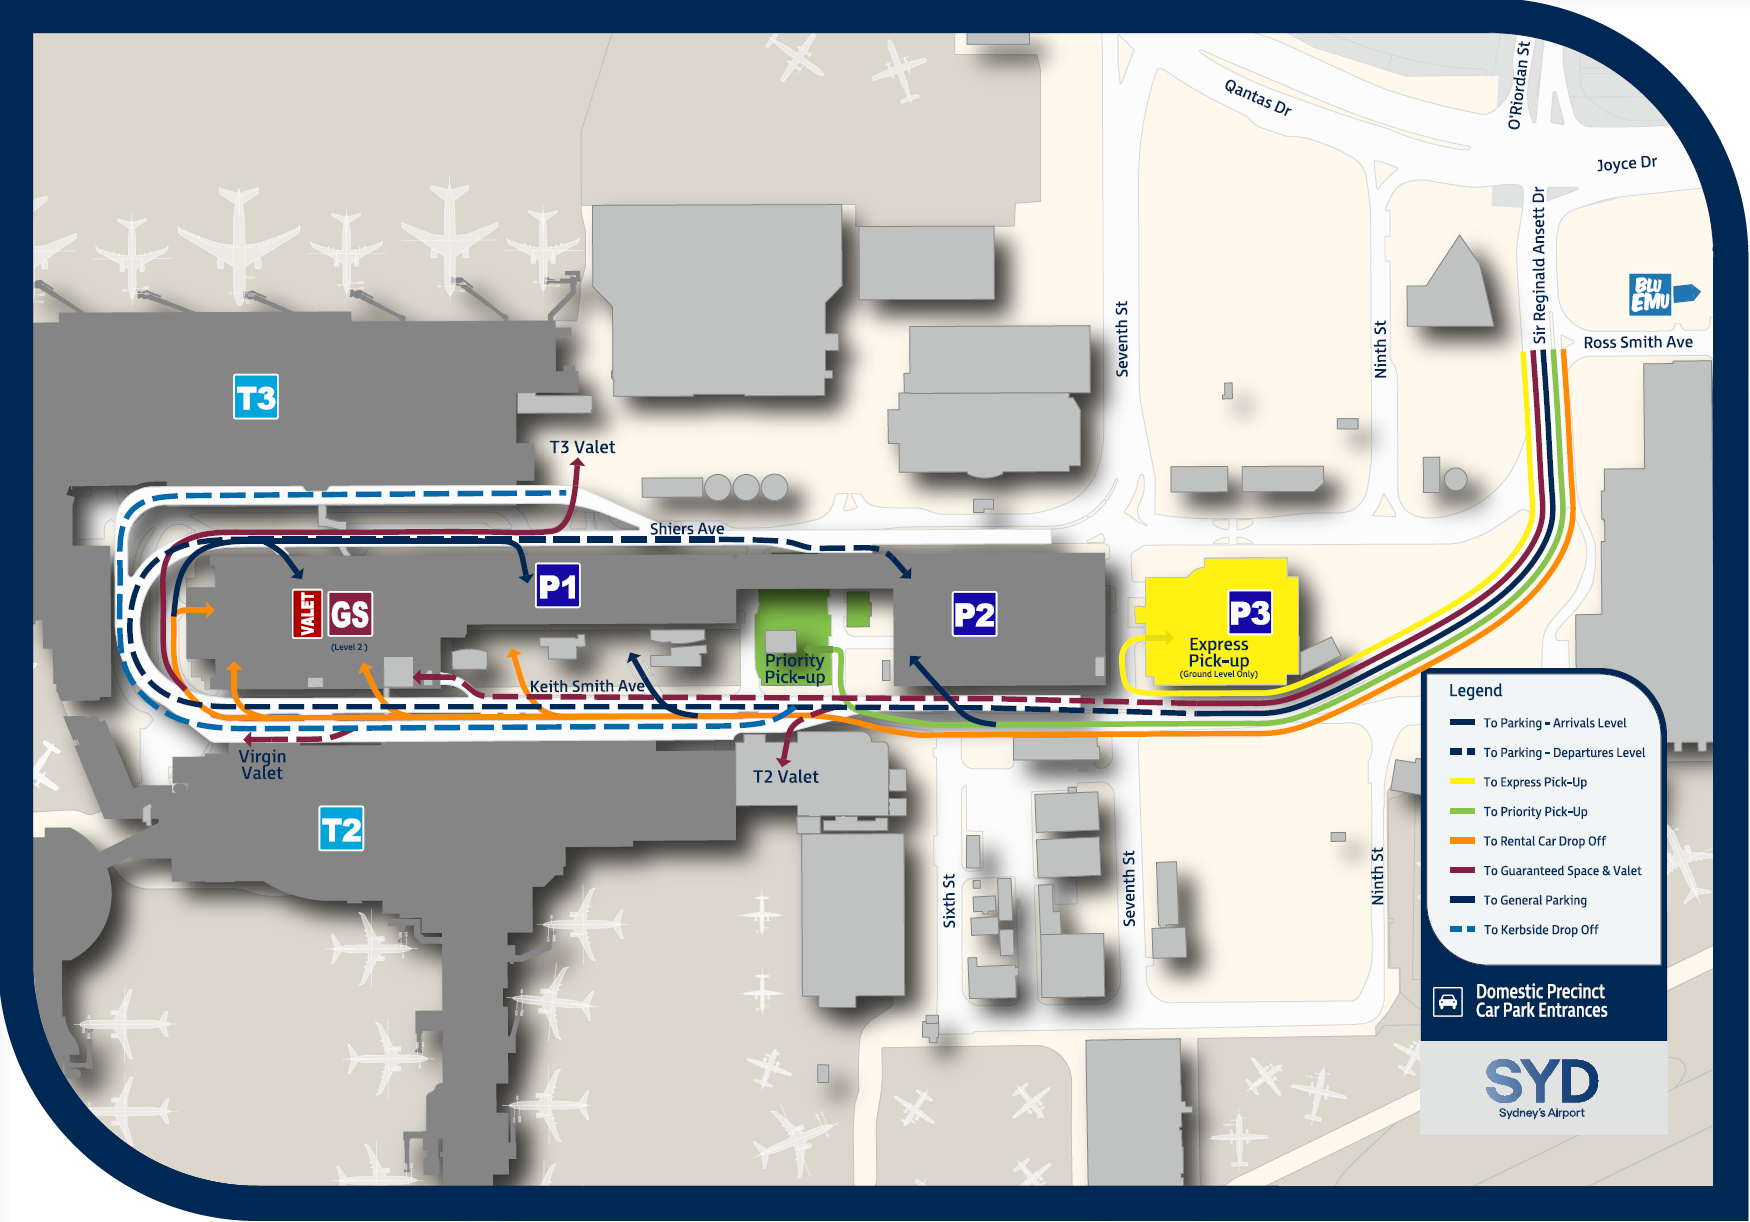 terminal 2 sydney domestic airport map Picking Up Passengers From Domestic Arrivals At Sydney Airport terminal 2 sydney domestic airport map